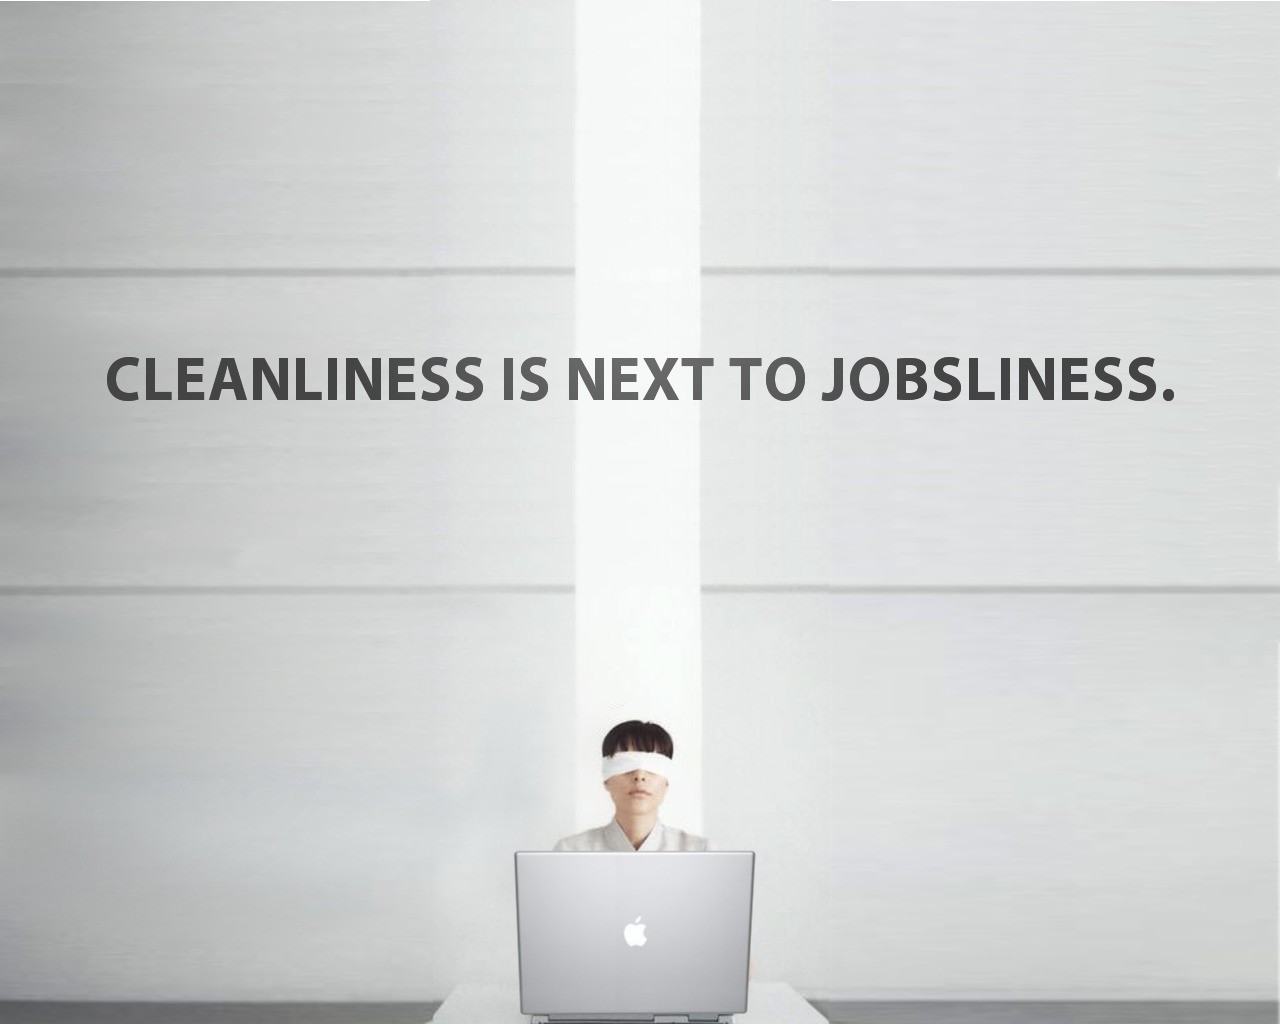 jobsliness itt original ll HD Wallpaper